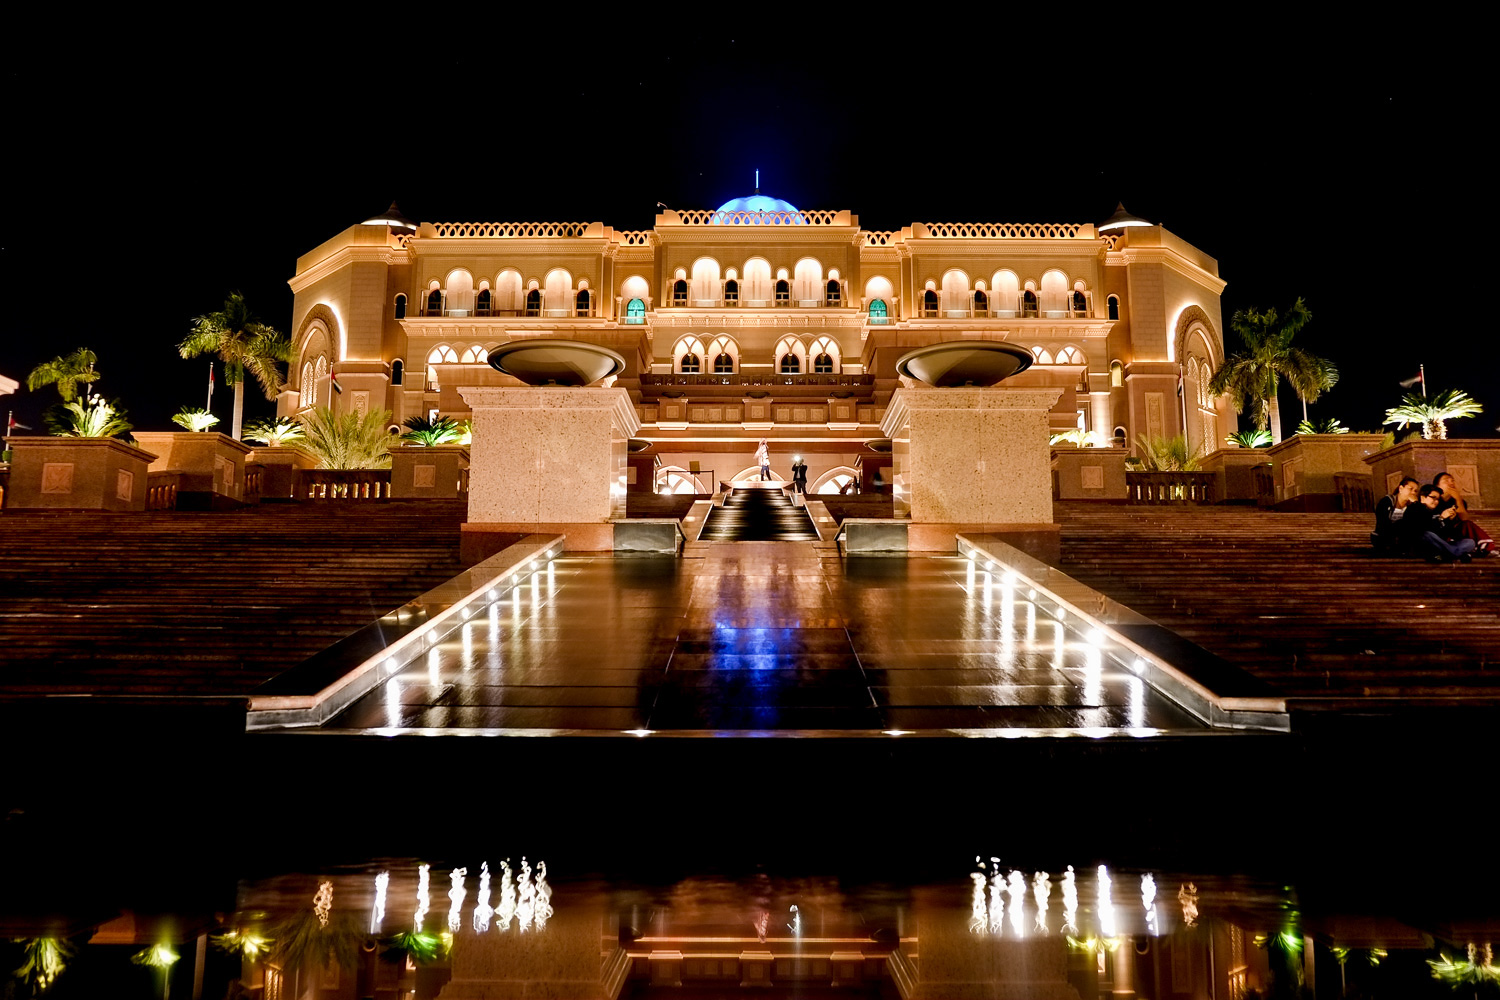 Main entrance of the Emirates Palace at night, when I was leaving. Another photographer was still working, can you see him? :)